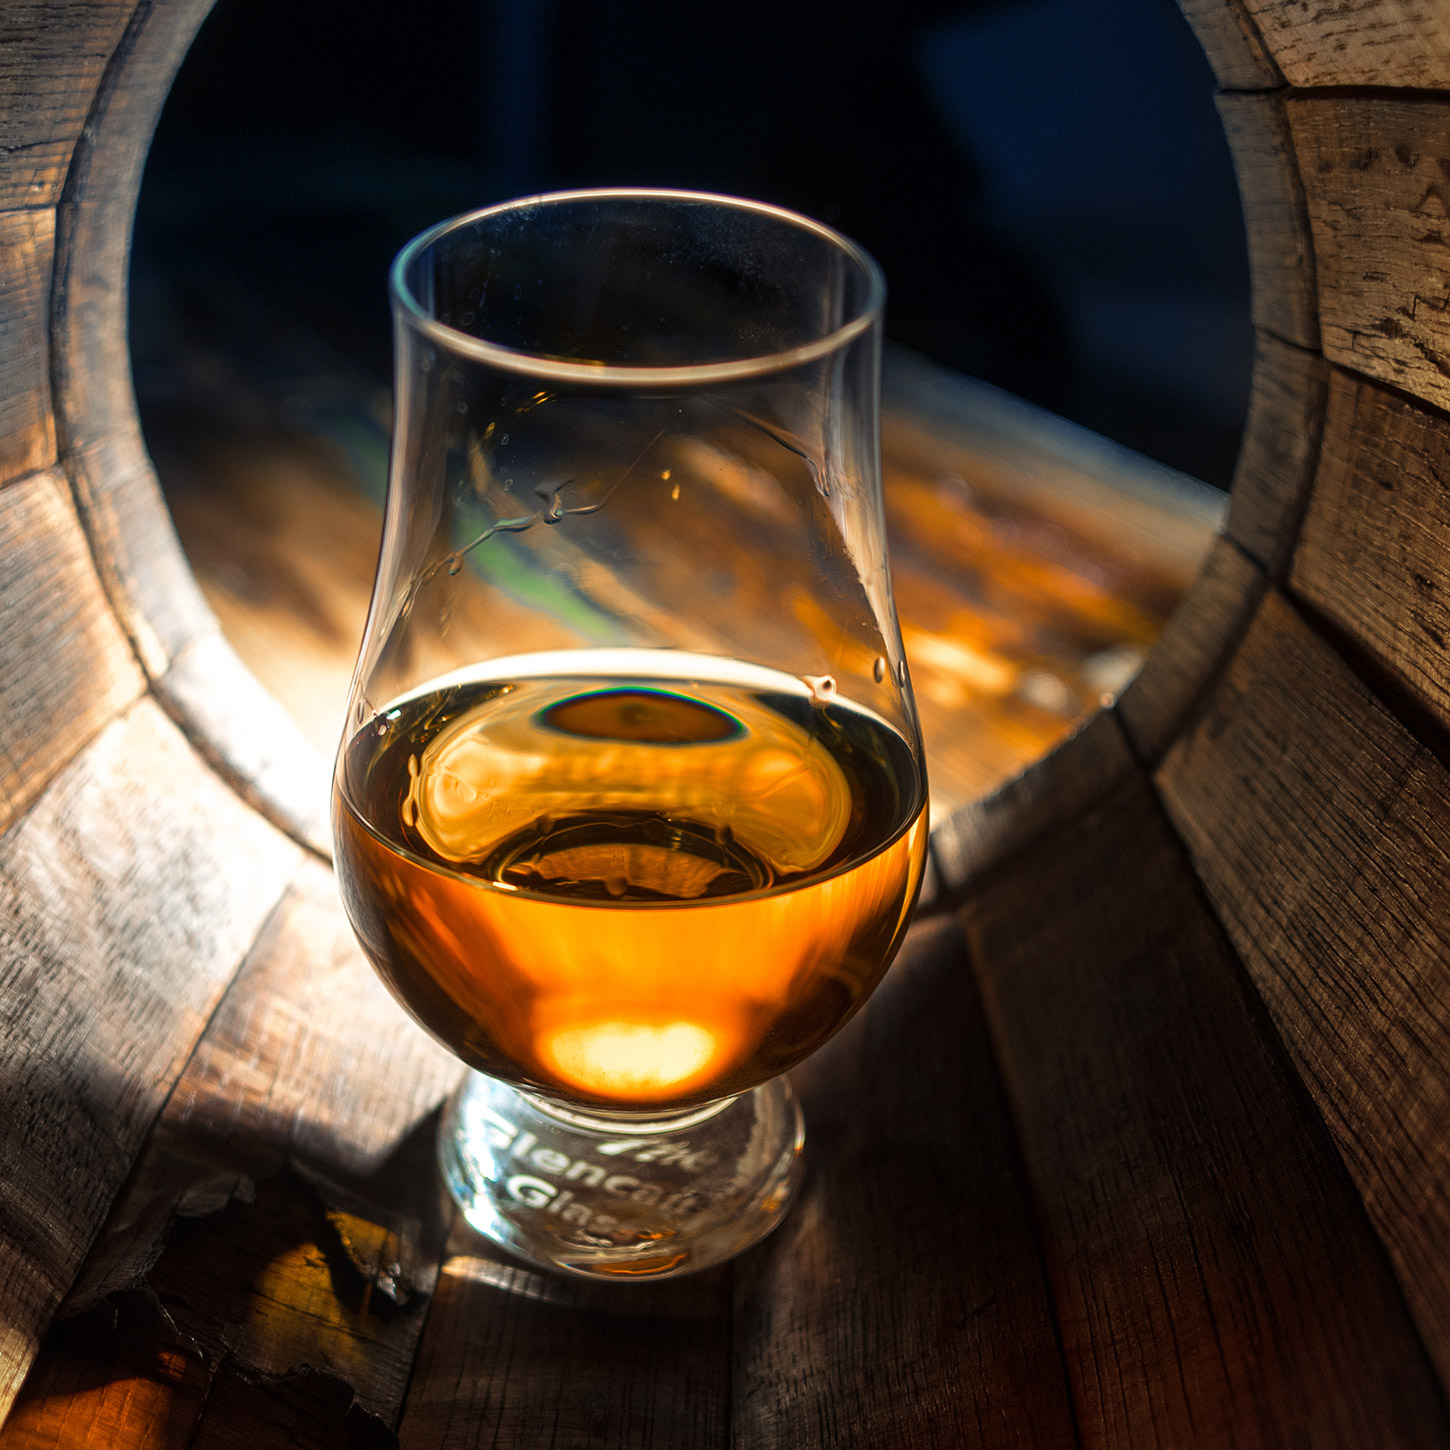 Glass of Bowmore The Devil's Casks III